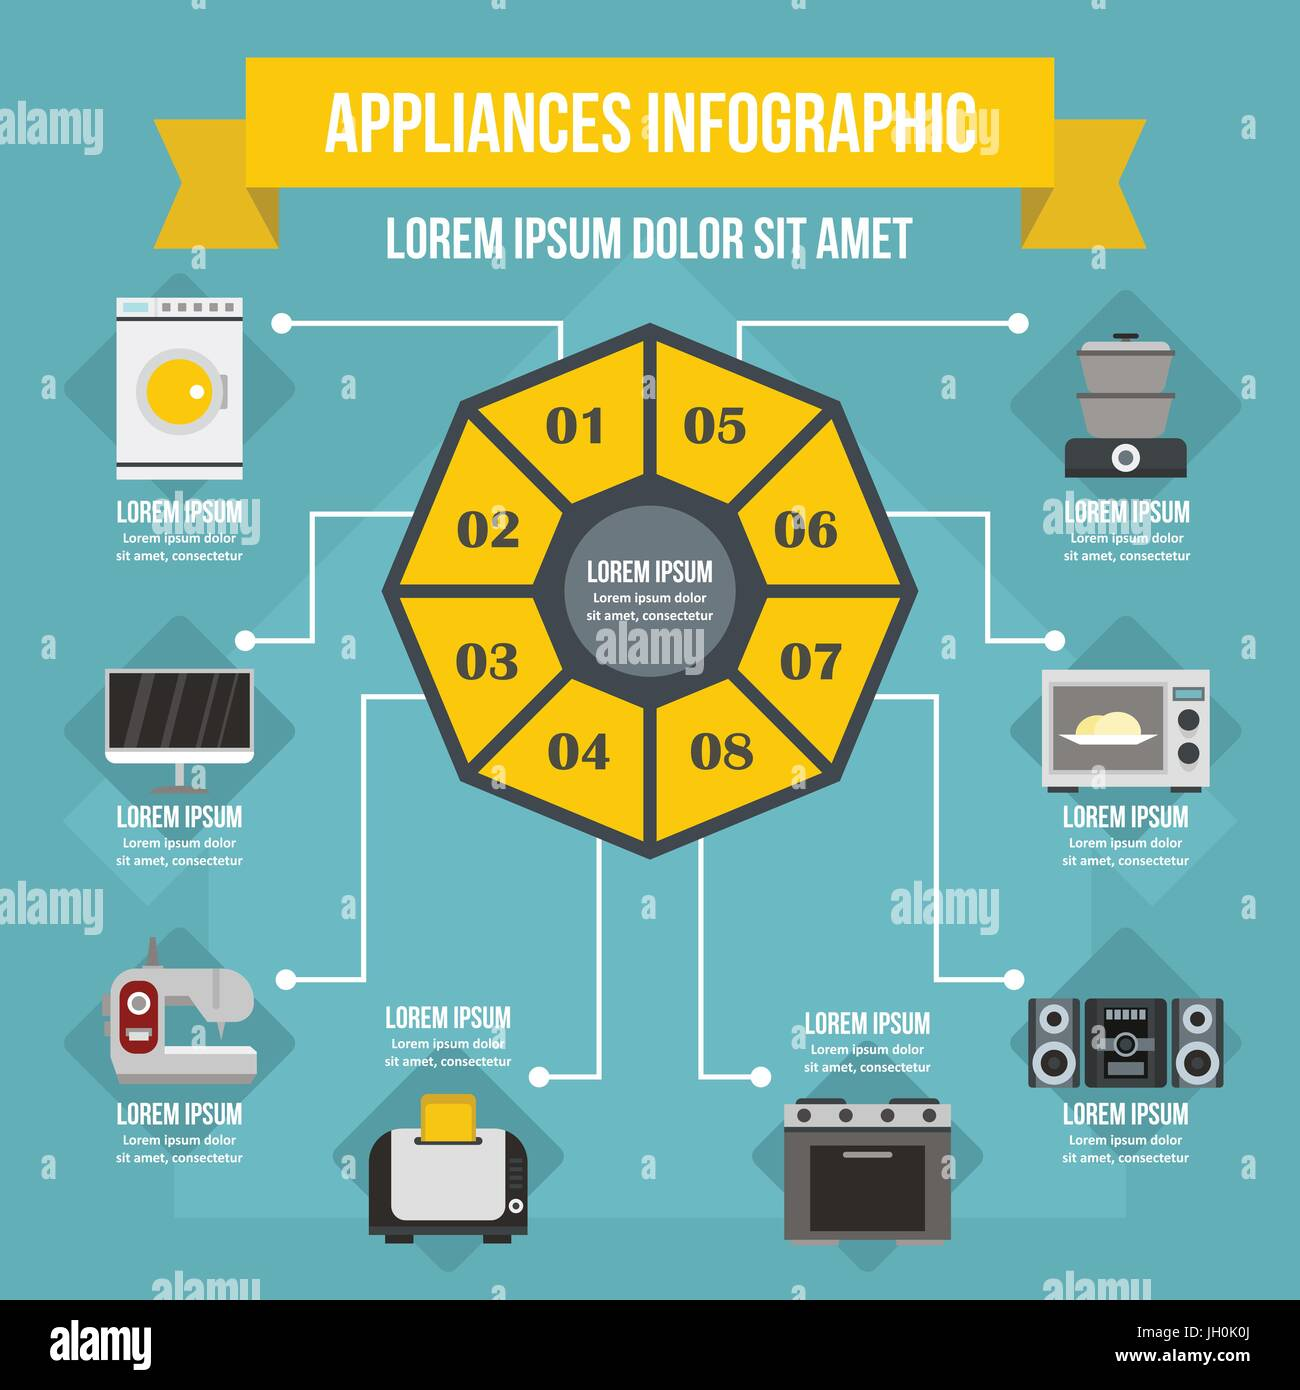 Appliances infographic concept, flat style - Stock Image